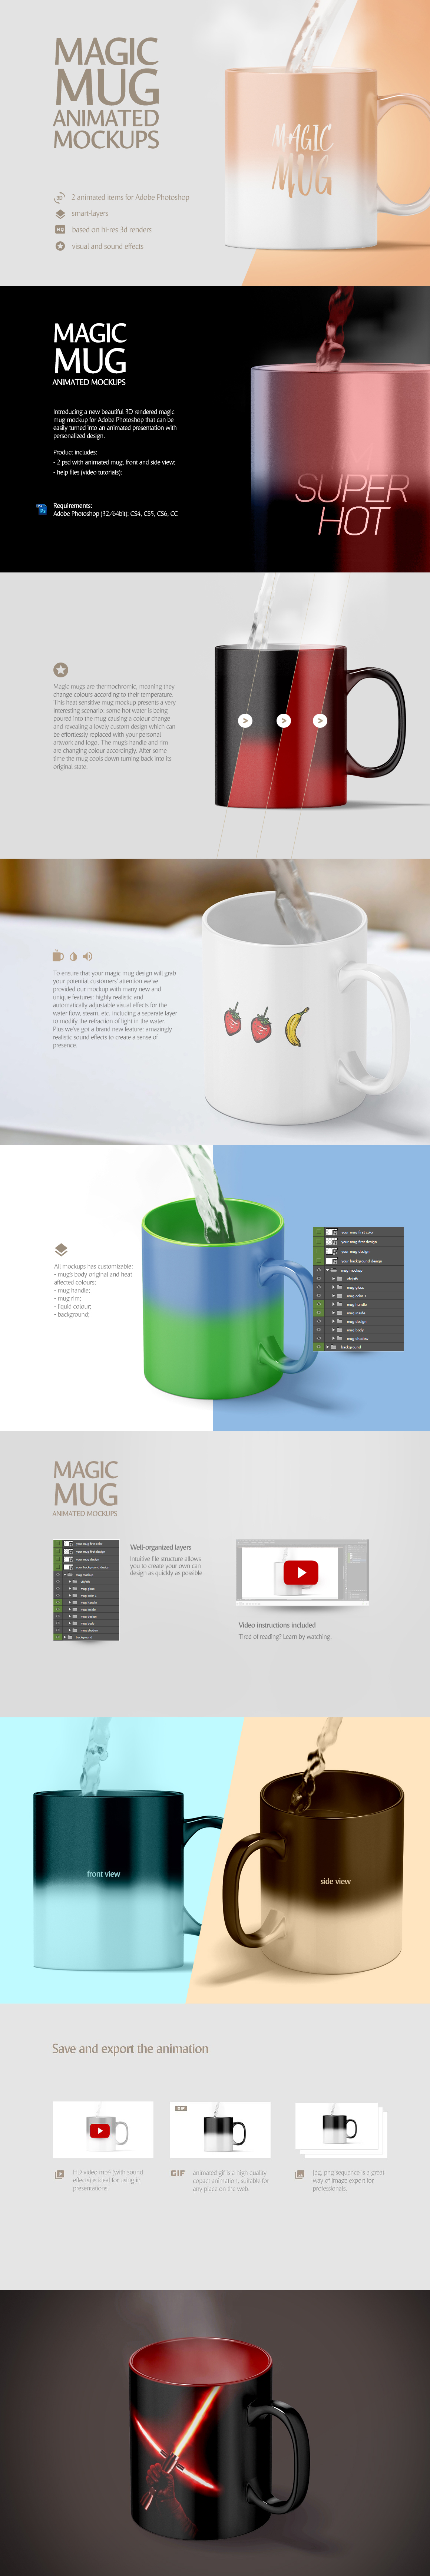 Mug Animated Mockups Bundle example image 5